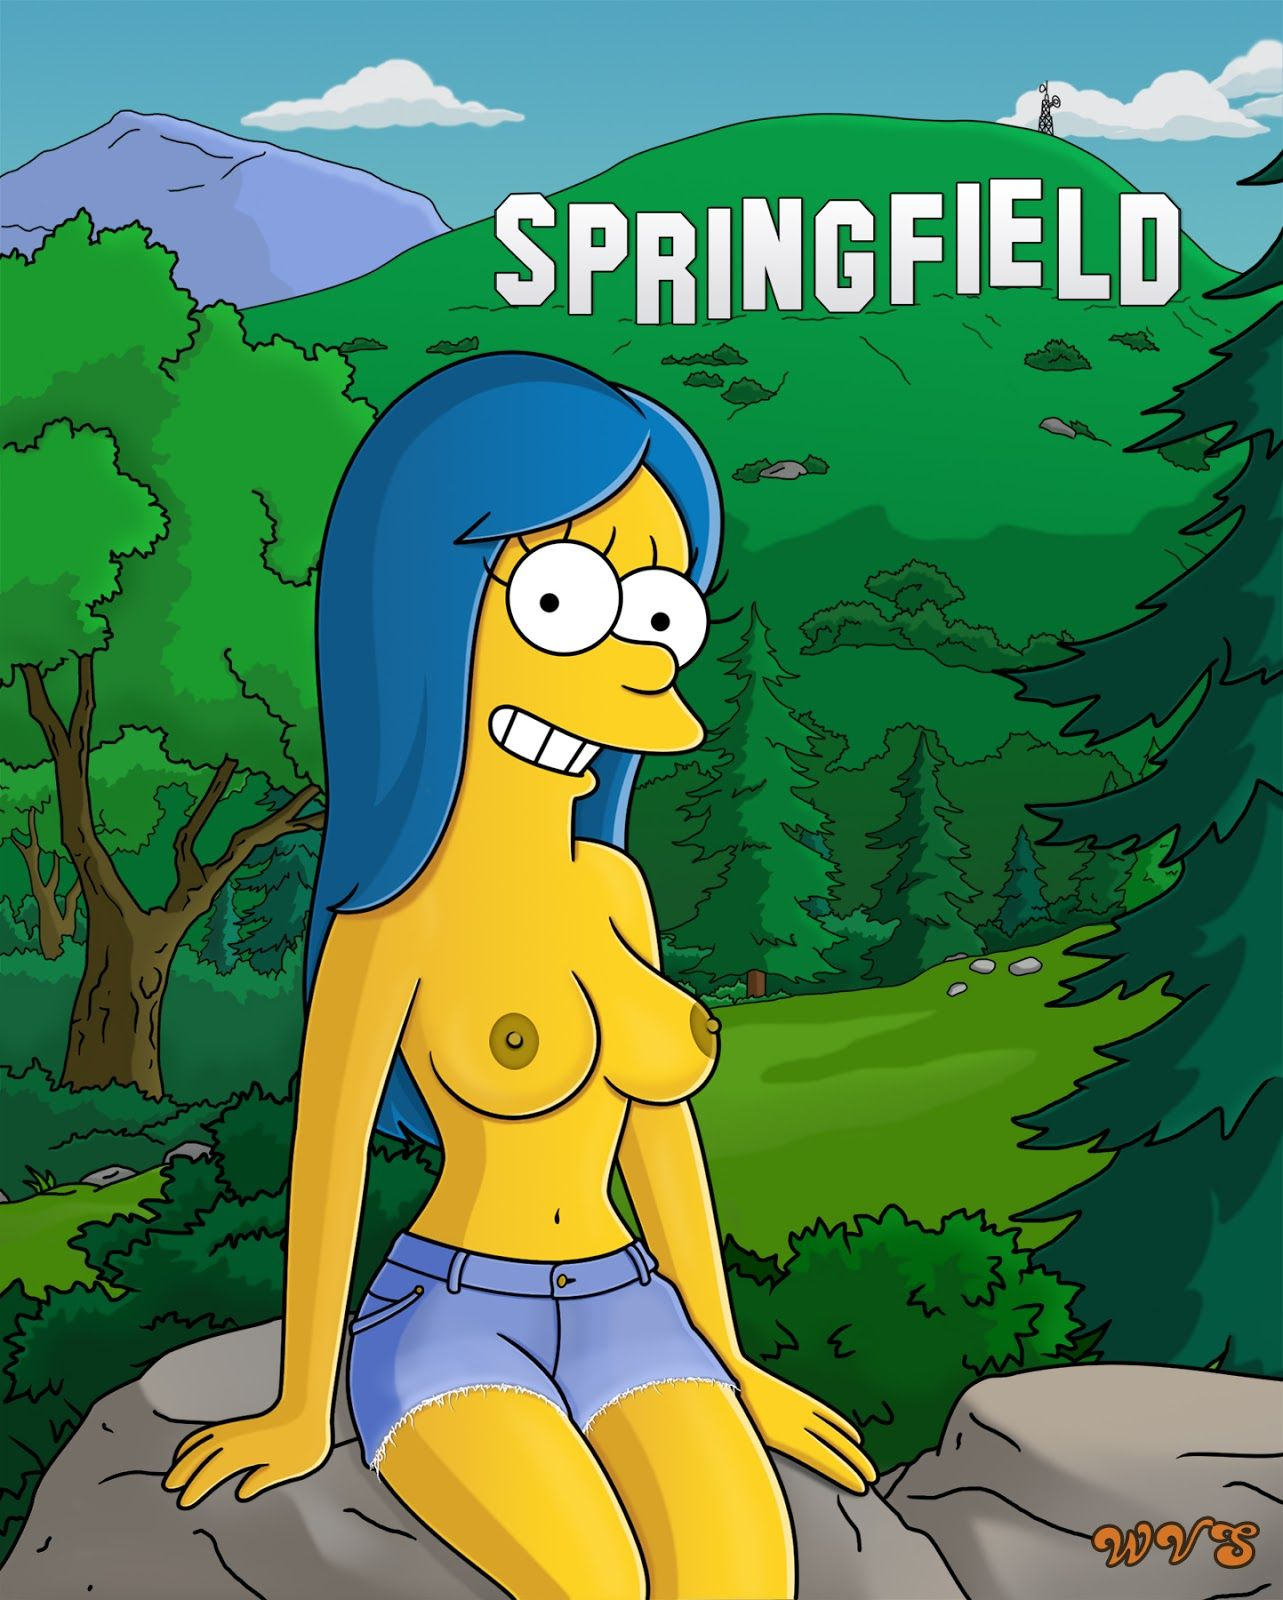 Nude pics of Marge Simpson already discussed